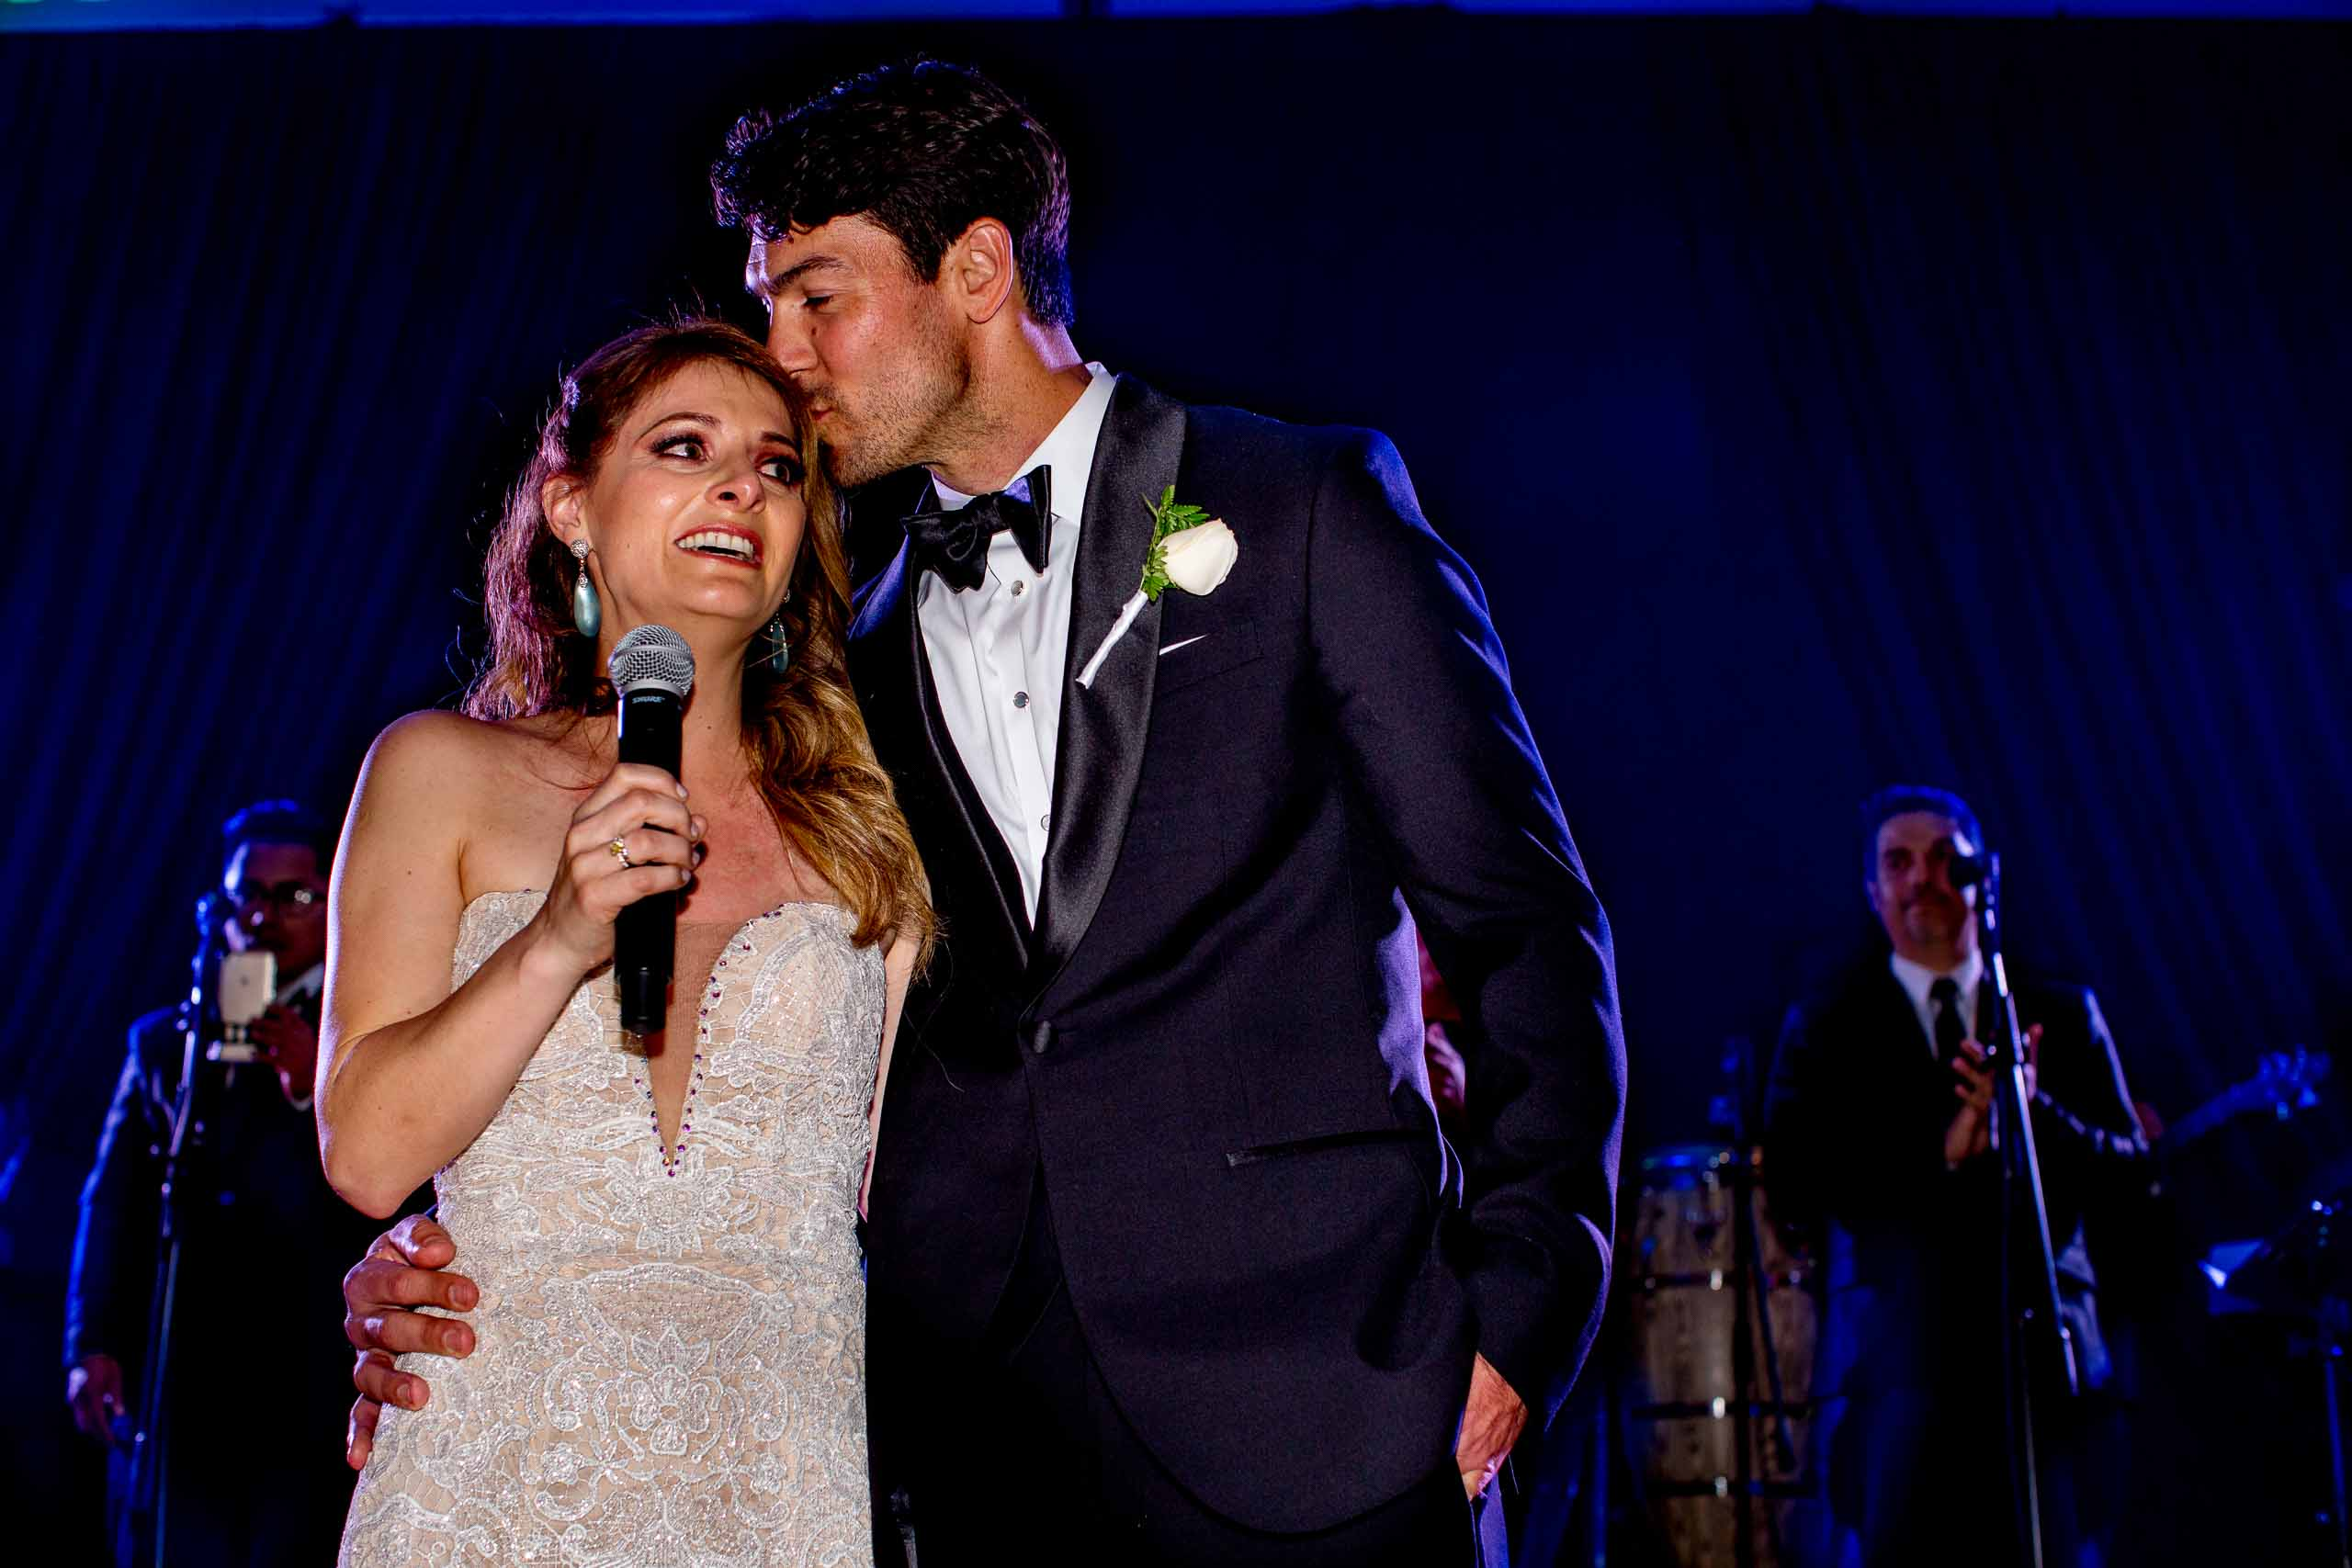 Bride and groom emotional speech during their Lima Peru wedding